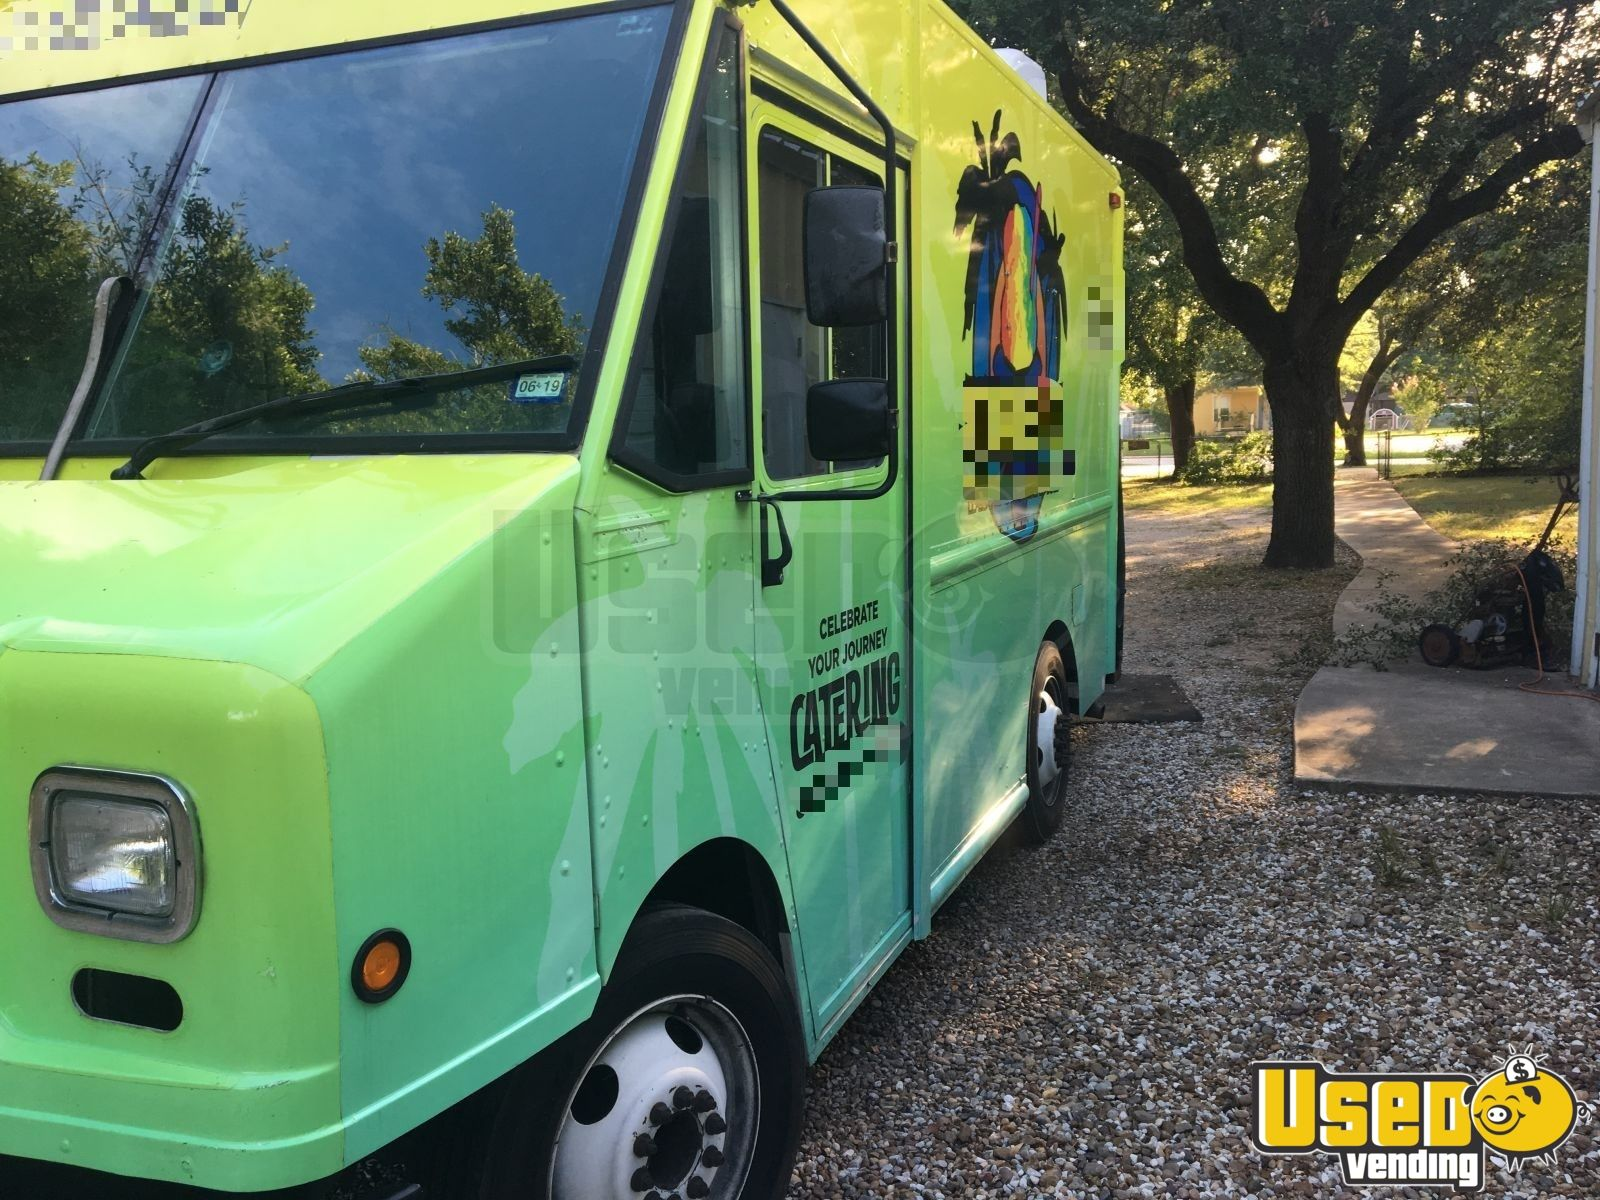 2007 Chevy Snowball Truck Air Conditioning Texas Gas Engine for Sale - 2